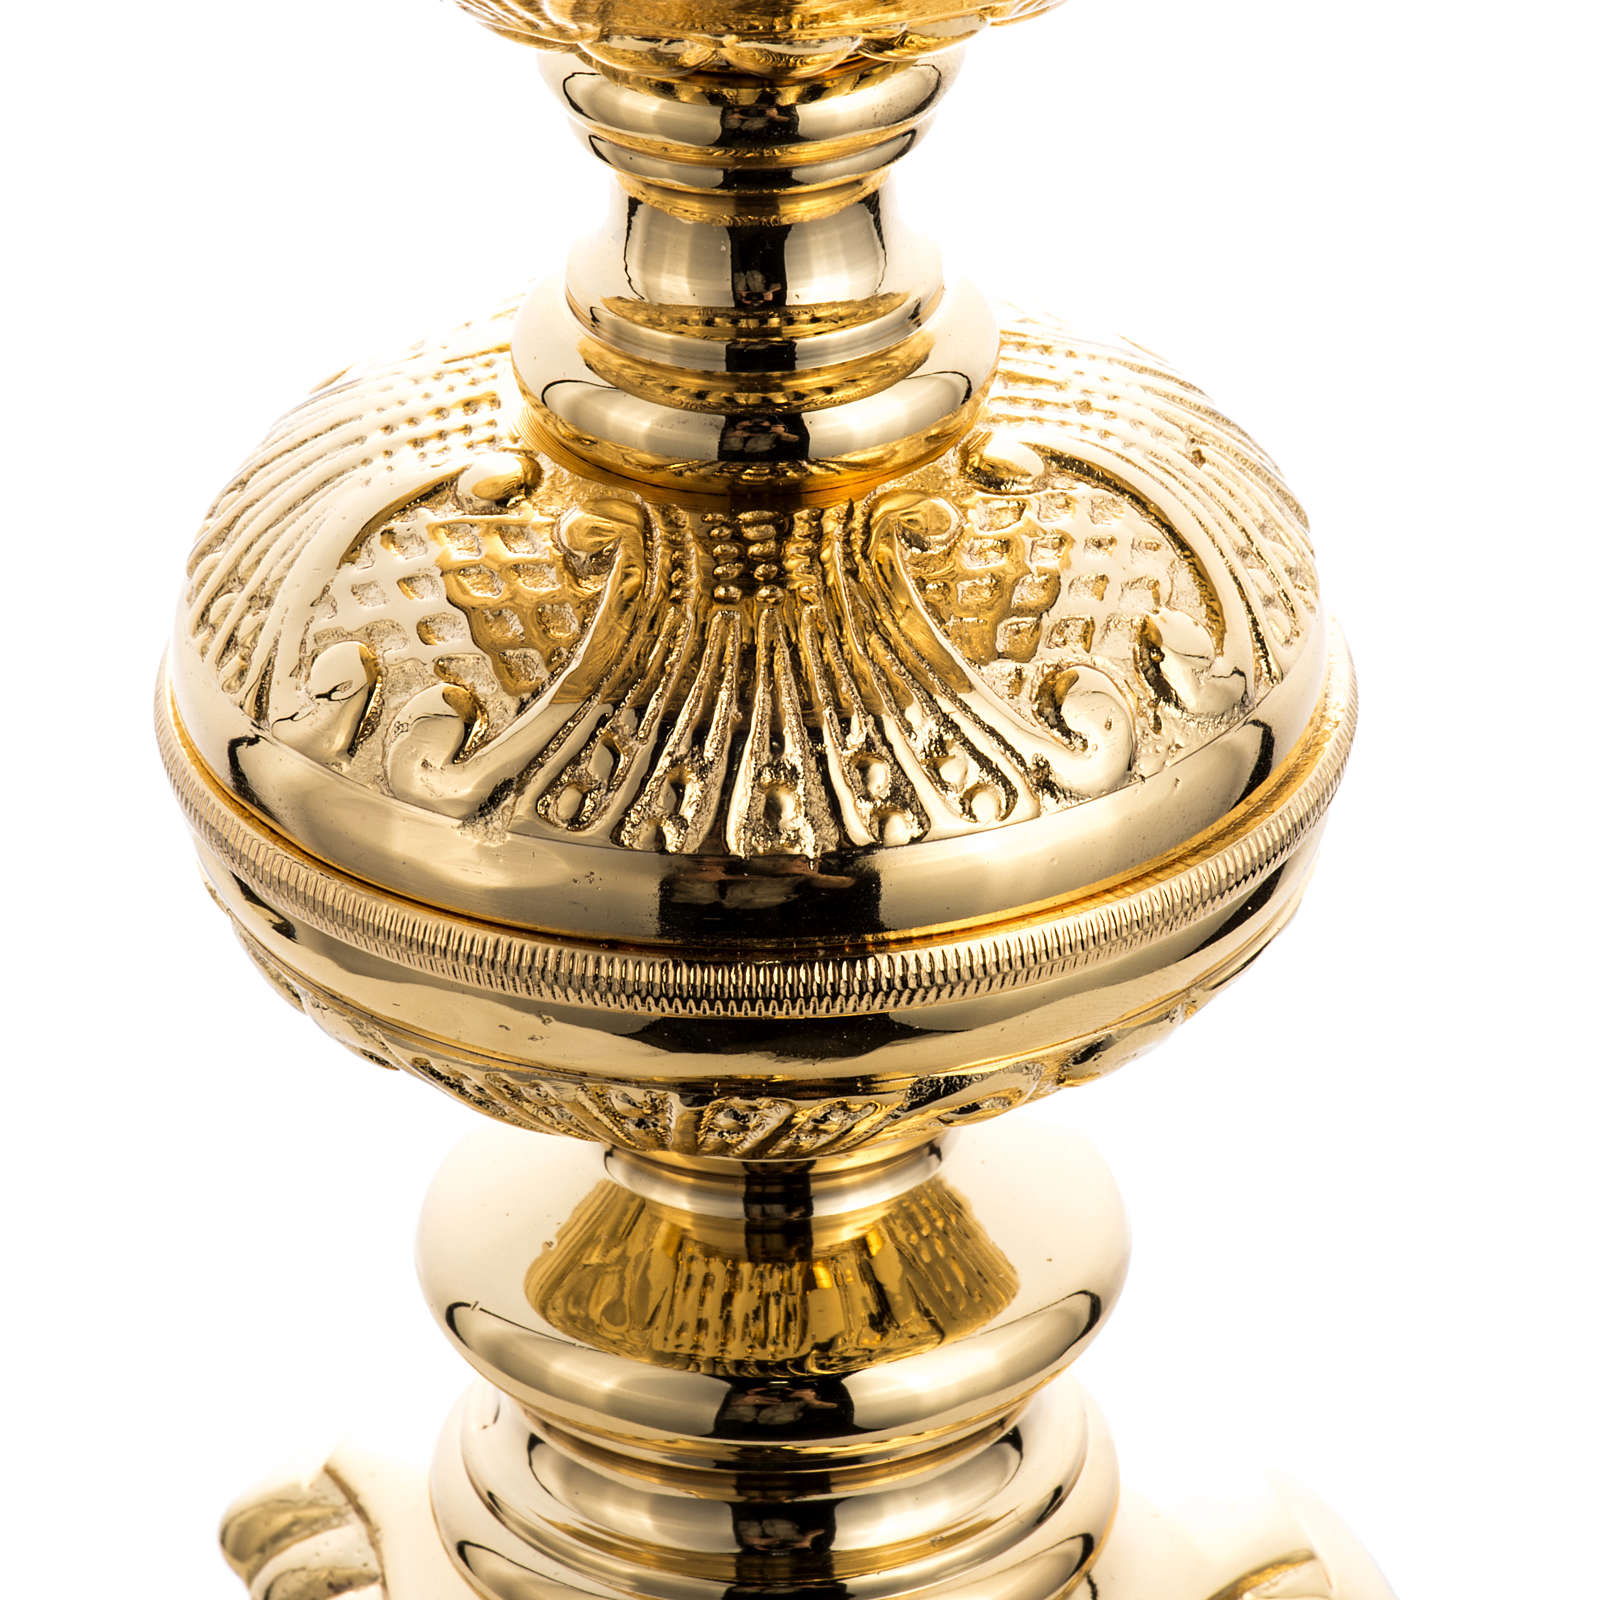 Baroque candlestick in gold-plated cast brass 4